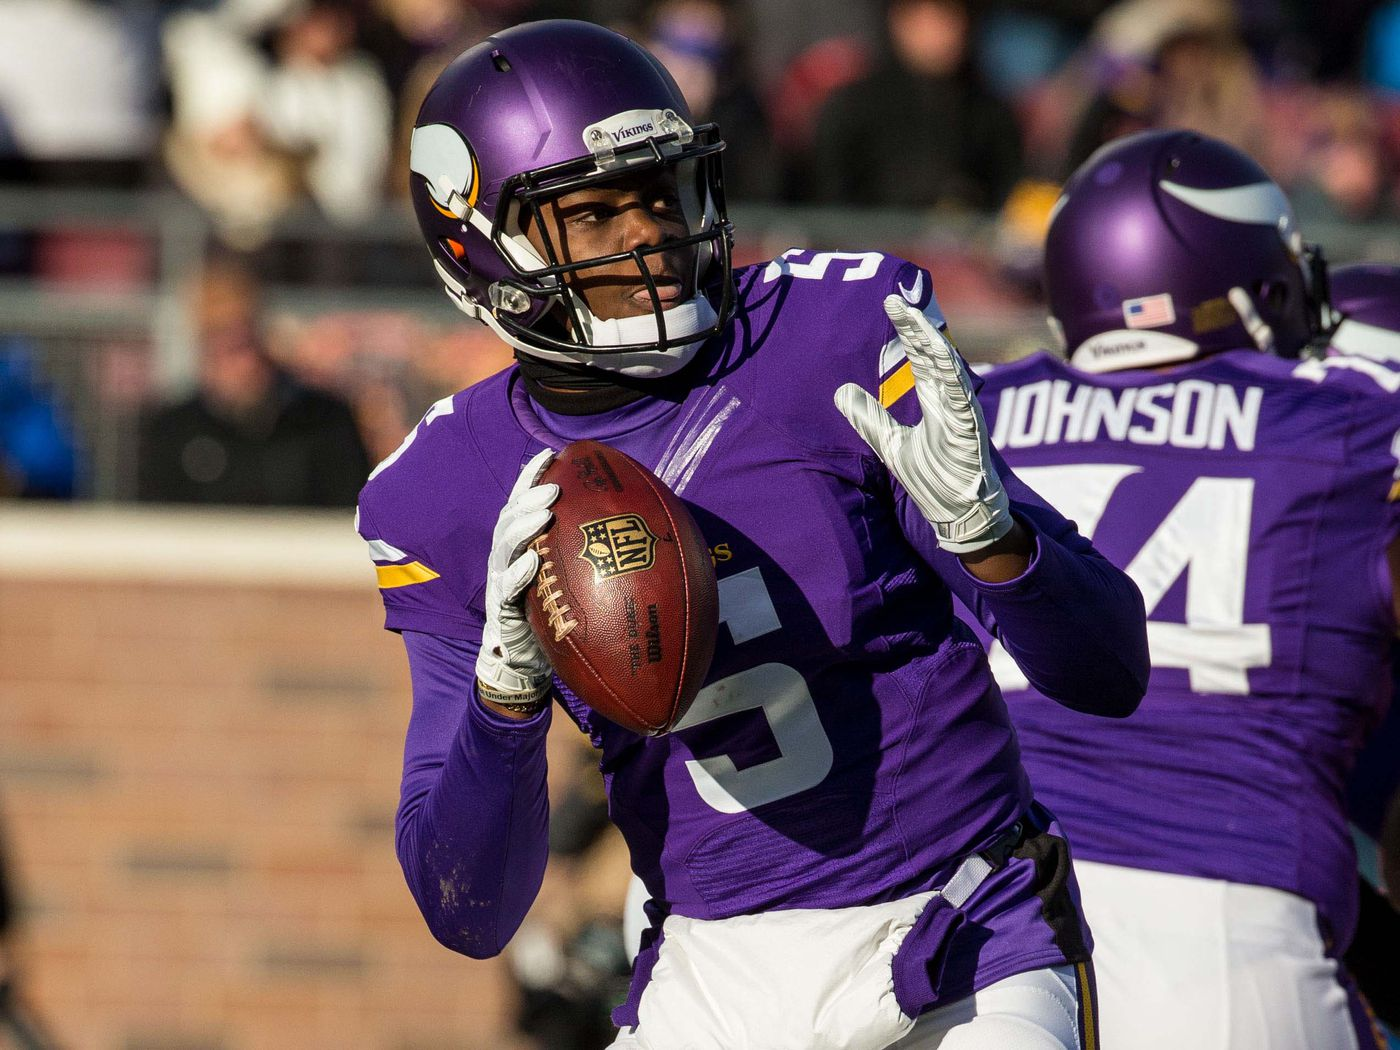 The Bengals should have drafted Teddy Bridgewater